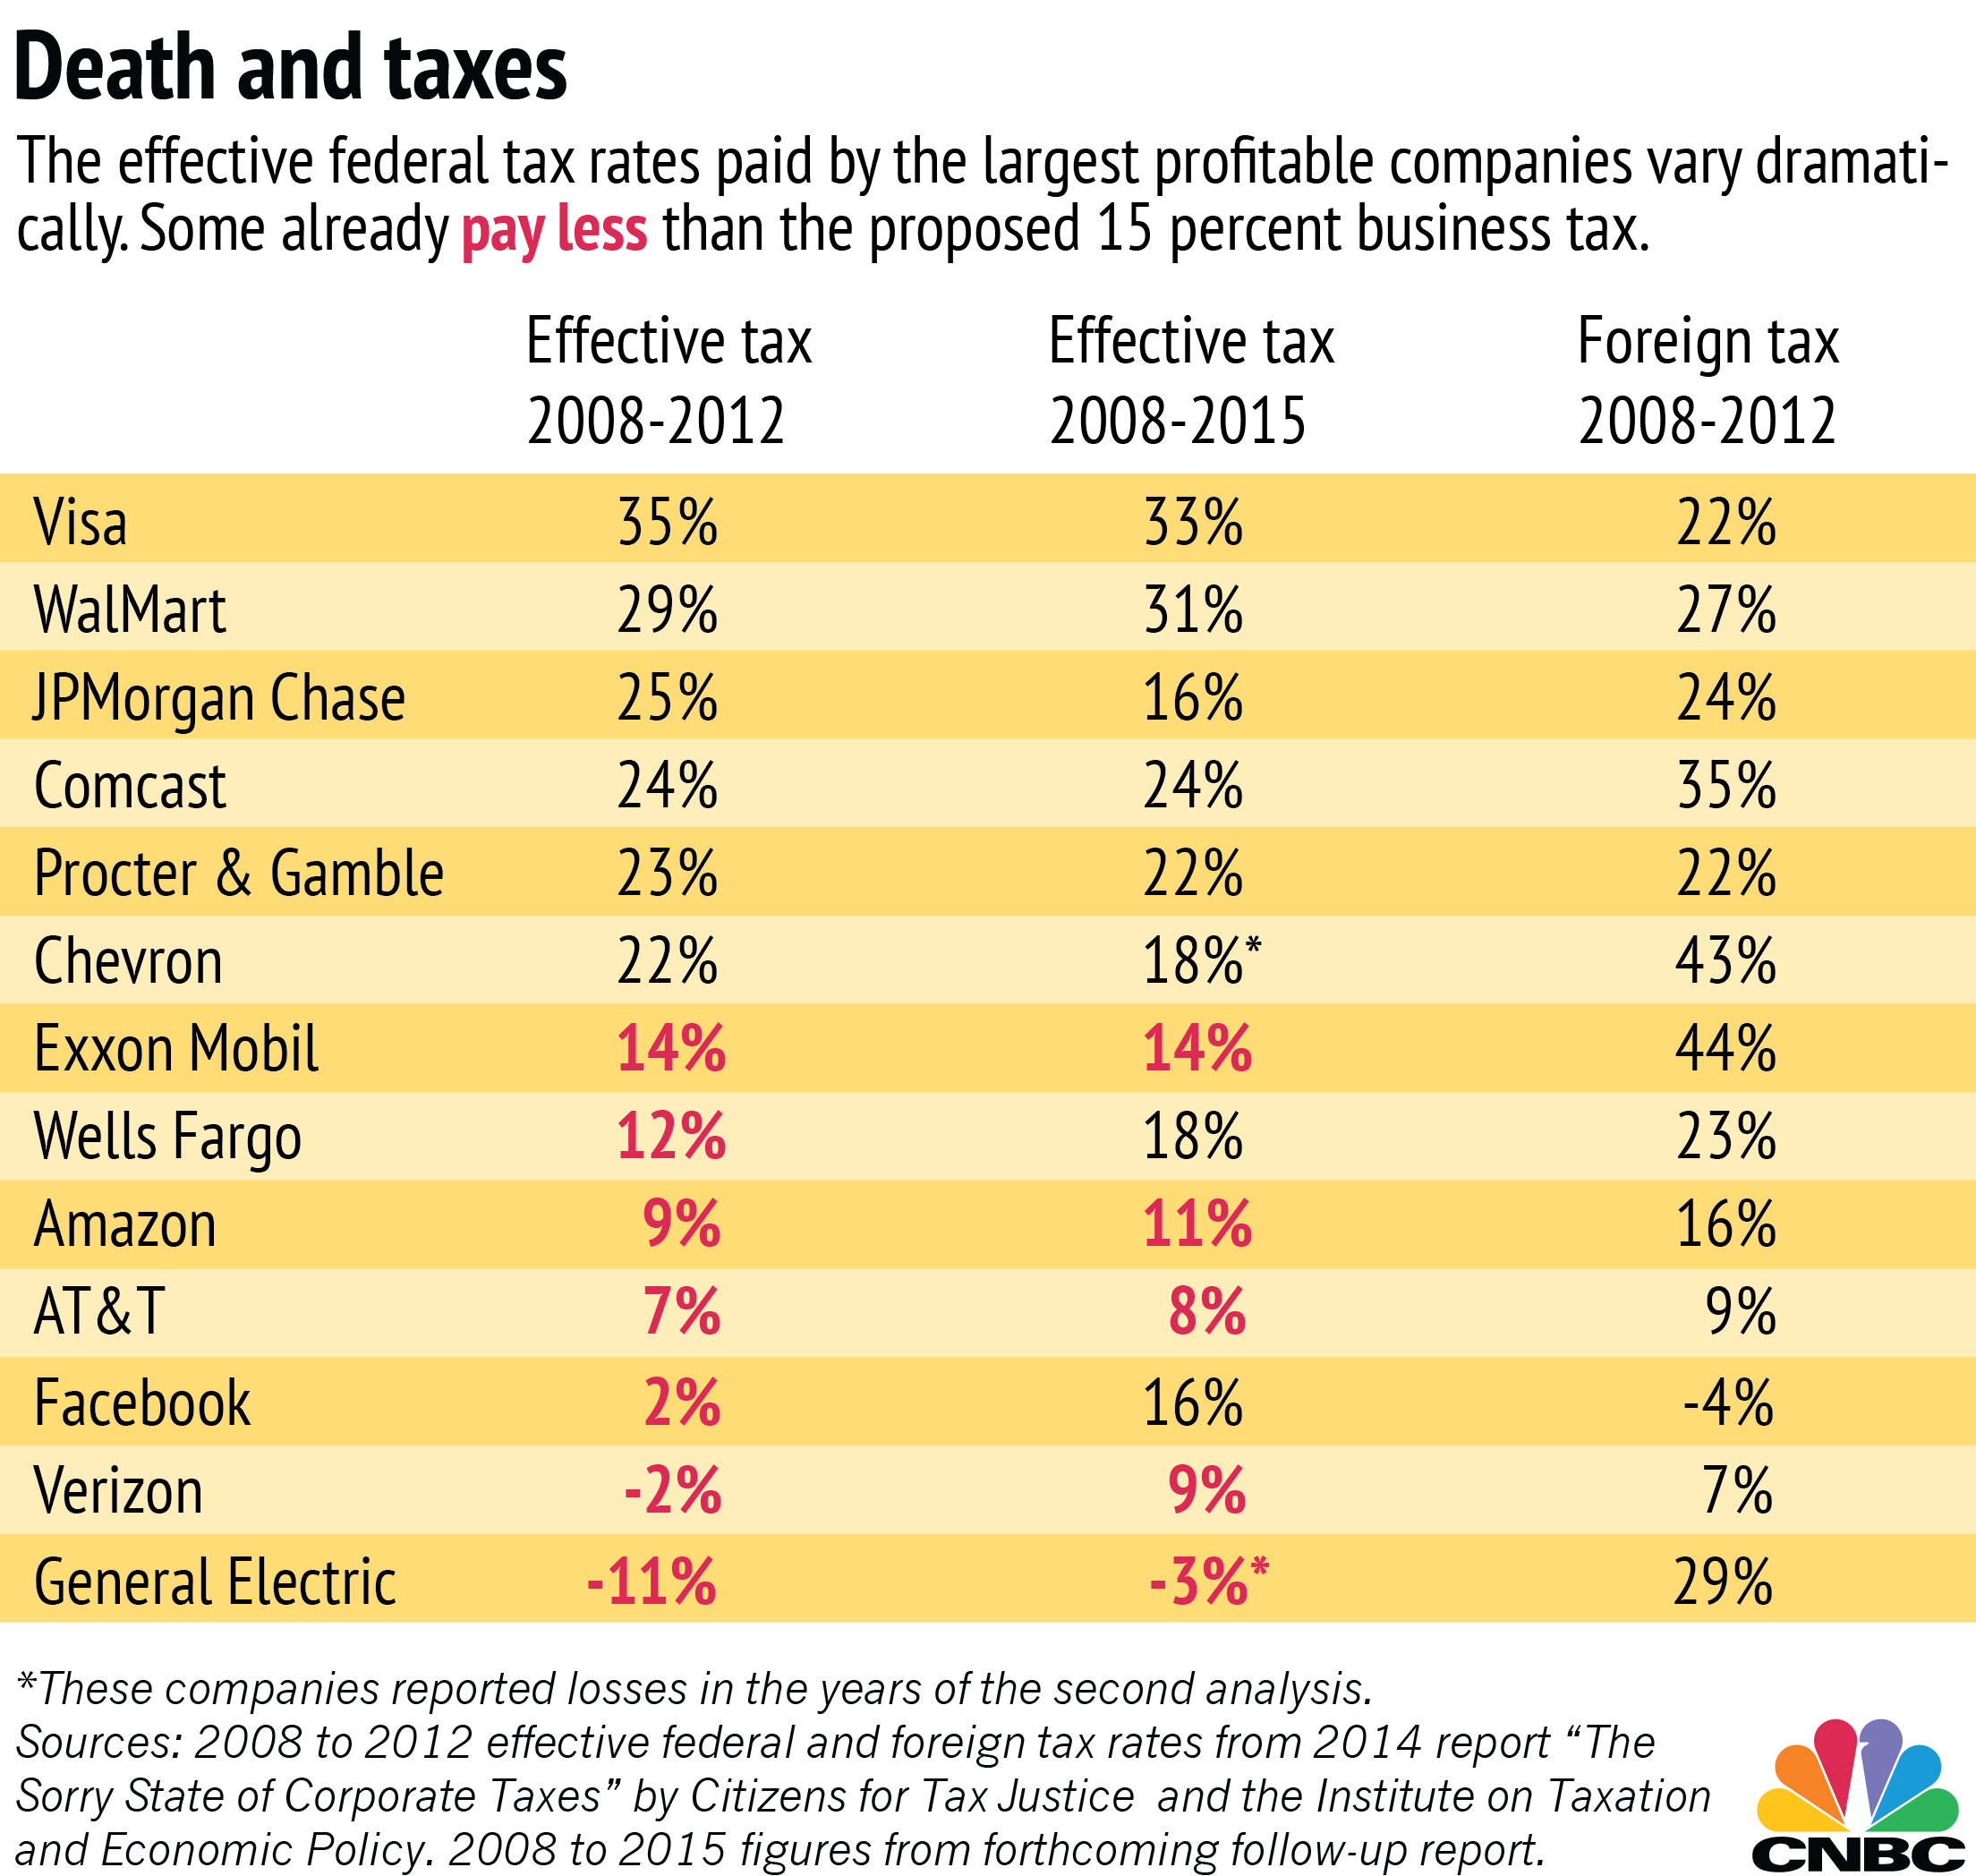 These Companies Could Lose The Most From Trump's Tax Plan